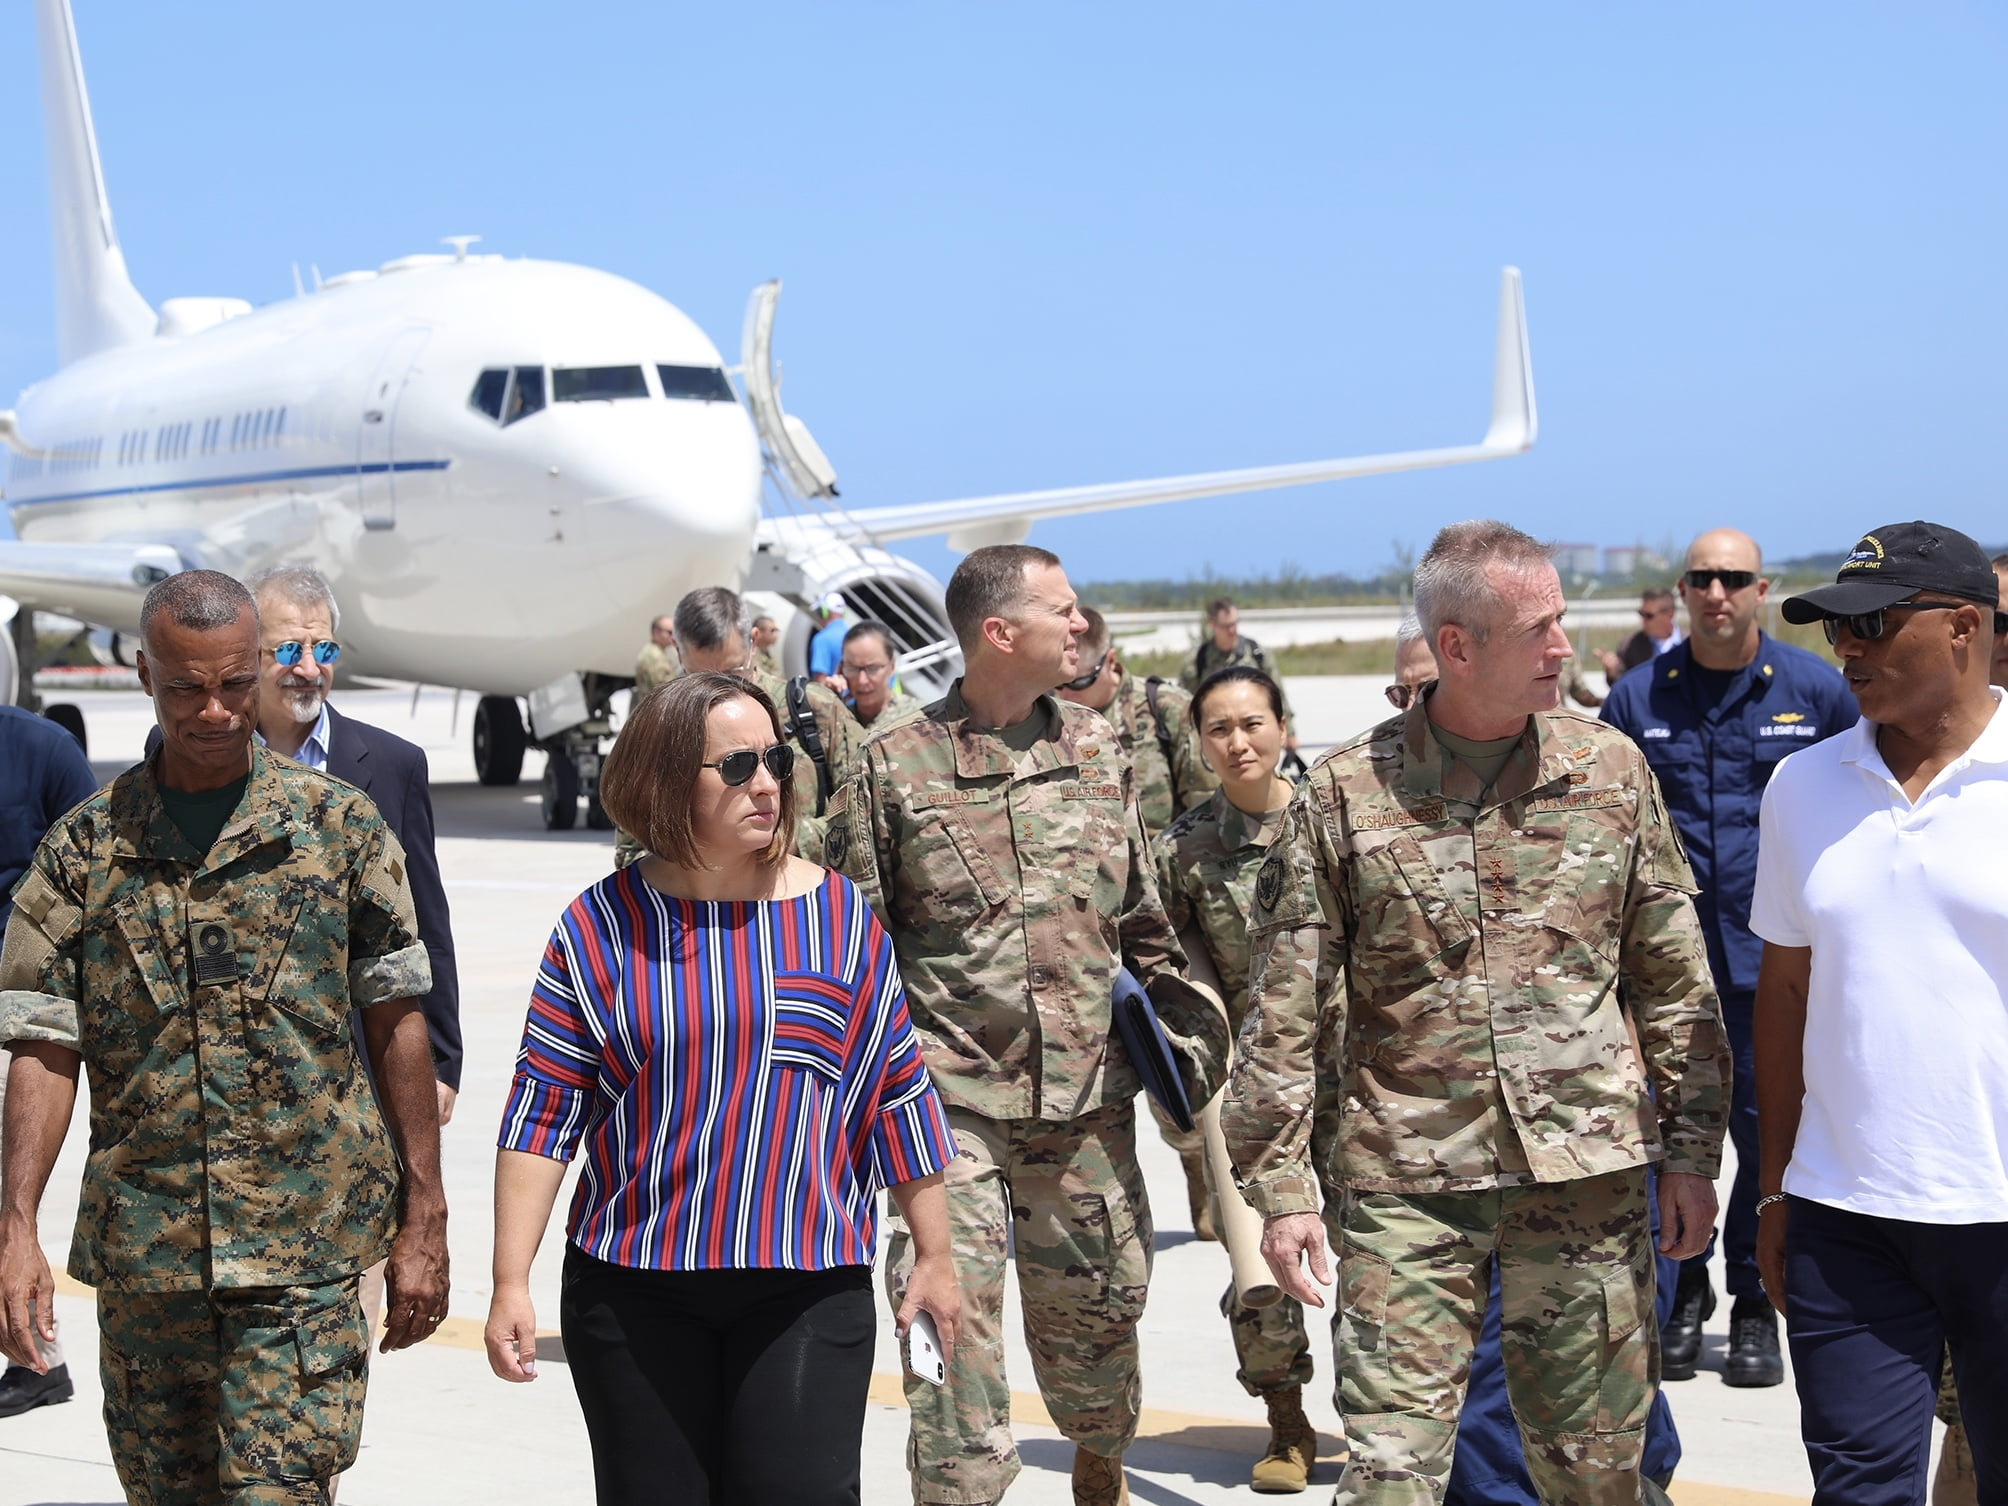 United States Steps up Relief Efforts in The Bahamas; U.S. Military Providing Airlift and Logistics Support